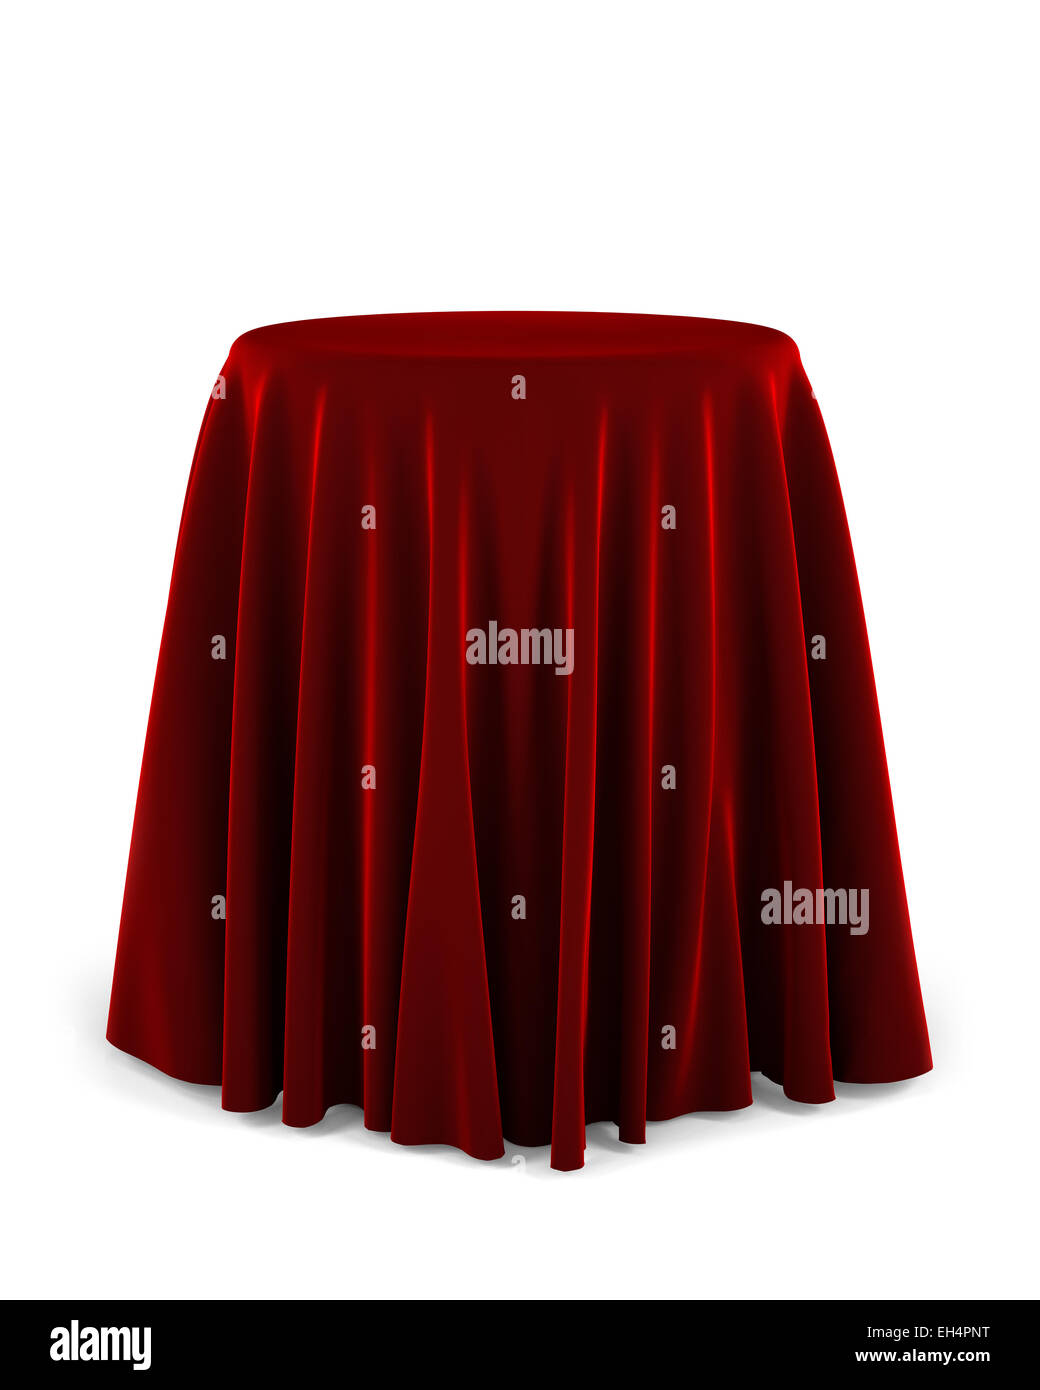 Round presentation pedestal covered with a red cloth - Stock Image